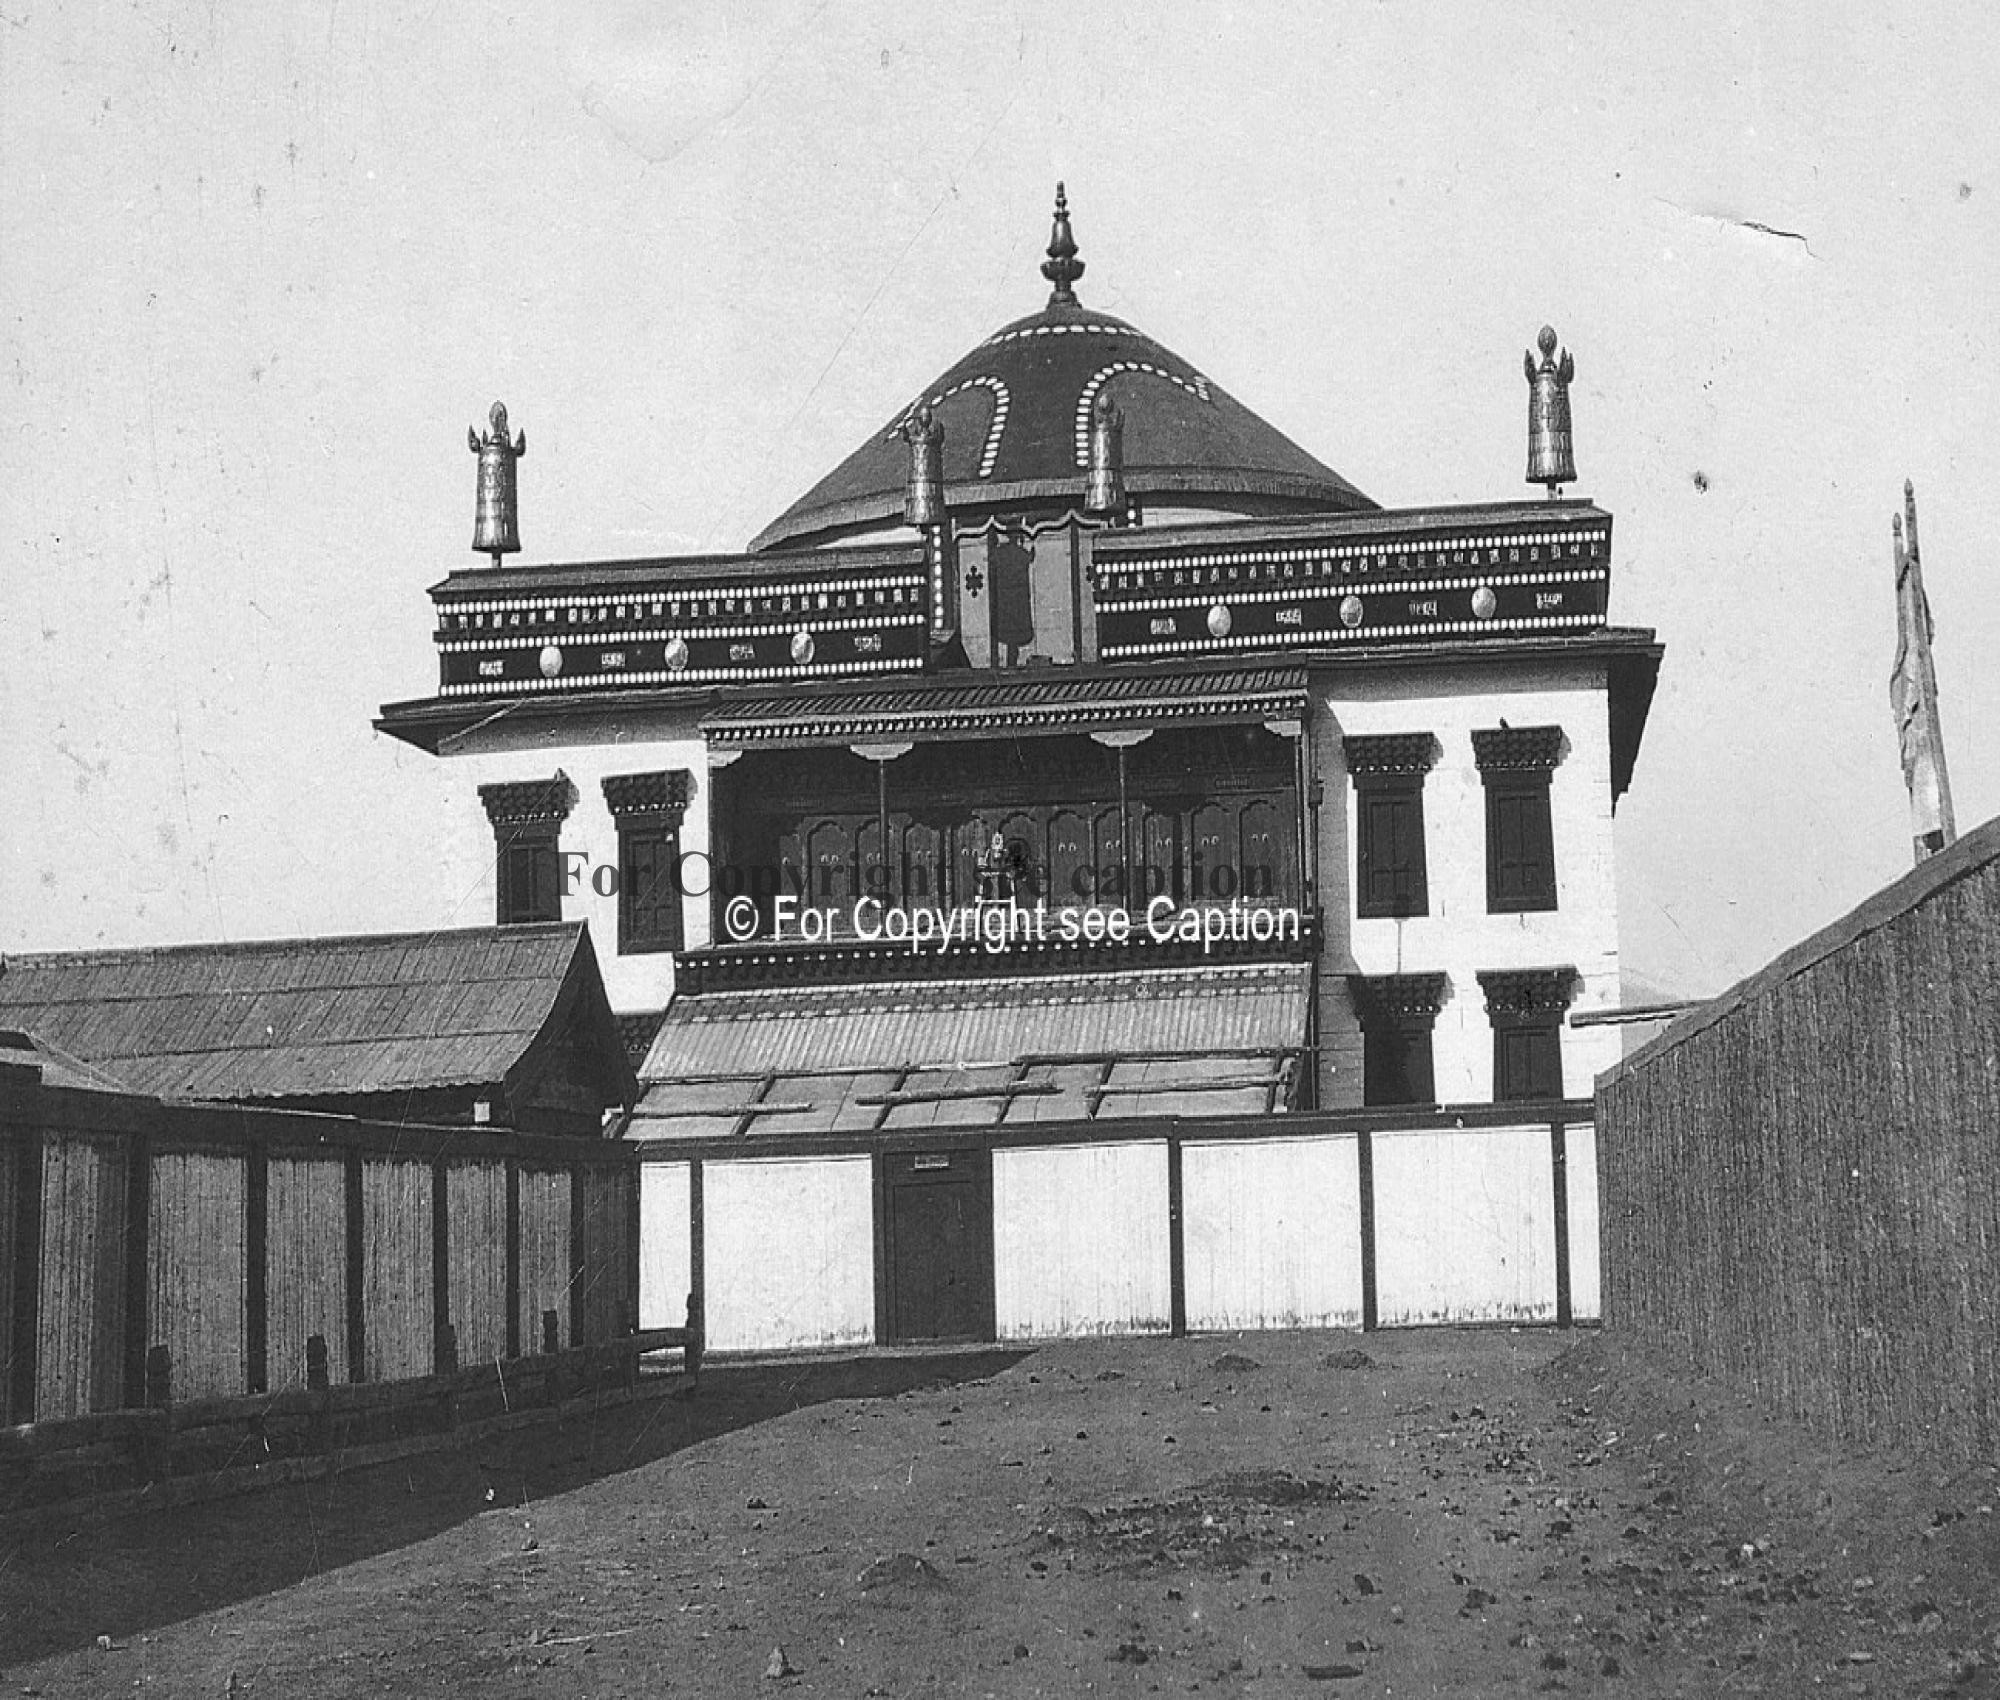 Maitreya temple. Lomakina 2006, Photo by S. Kondratyev in the 1920s. 26